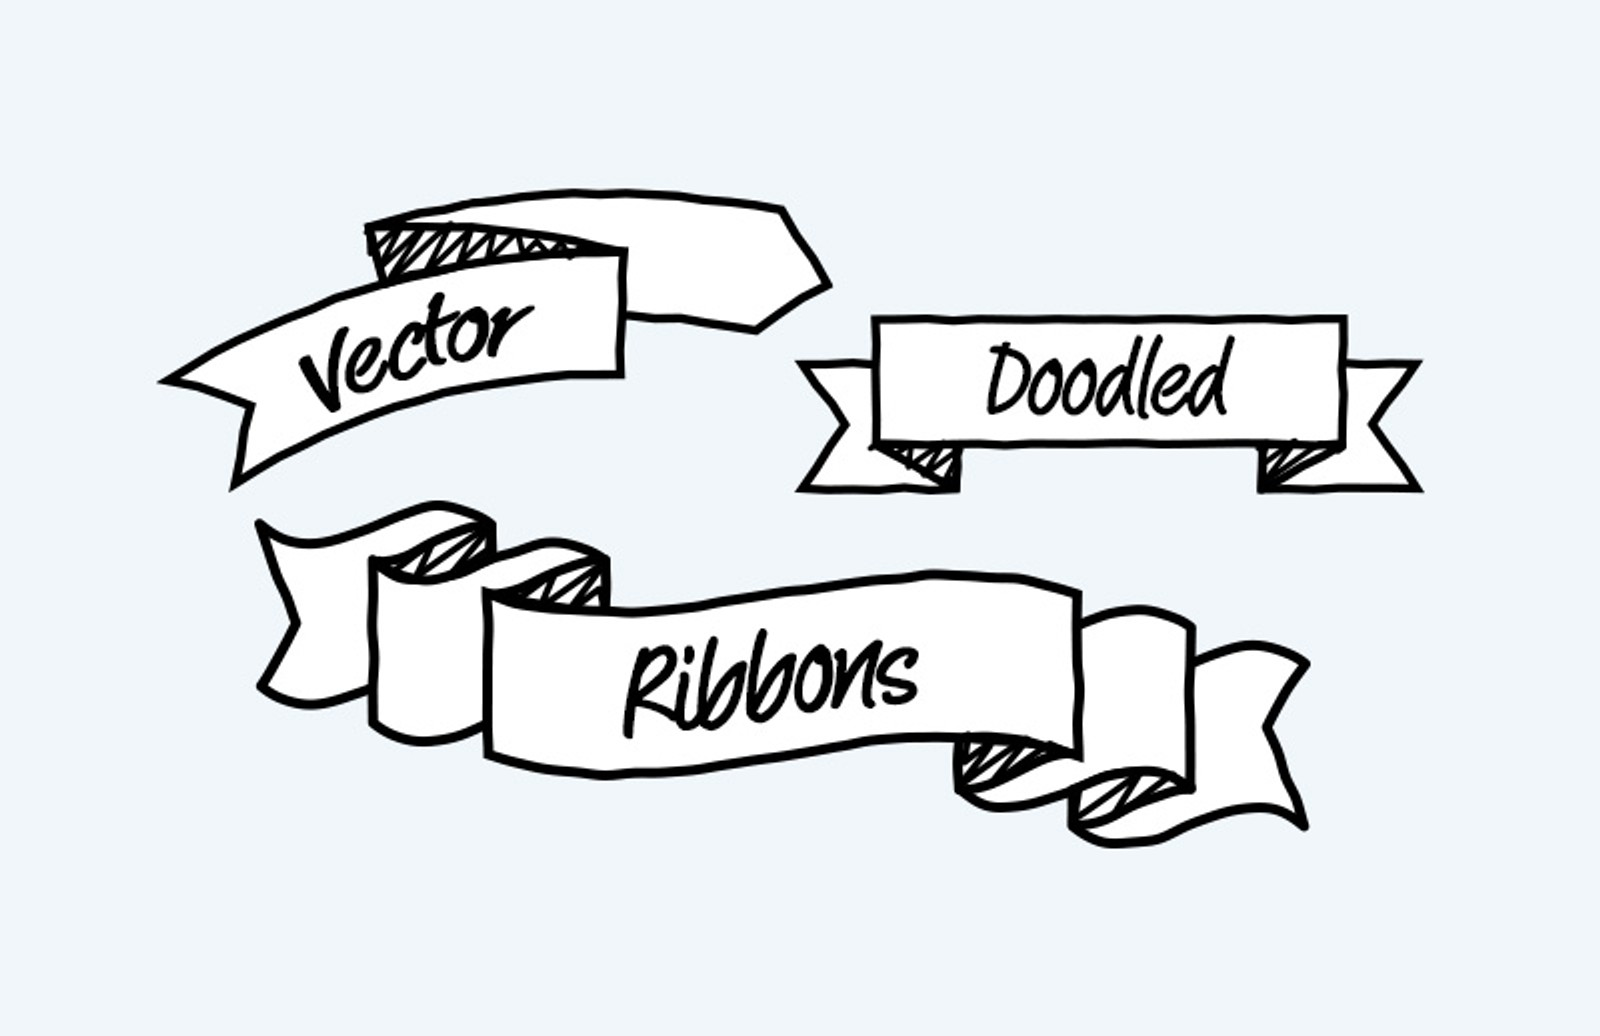 Vector  Doodled  Ribbons  Preview 1